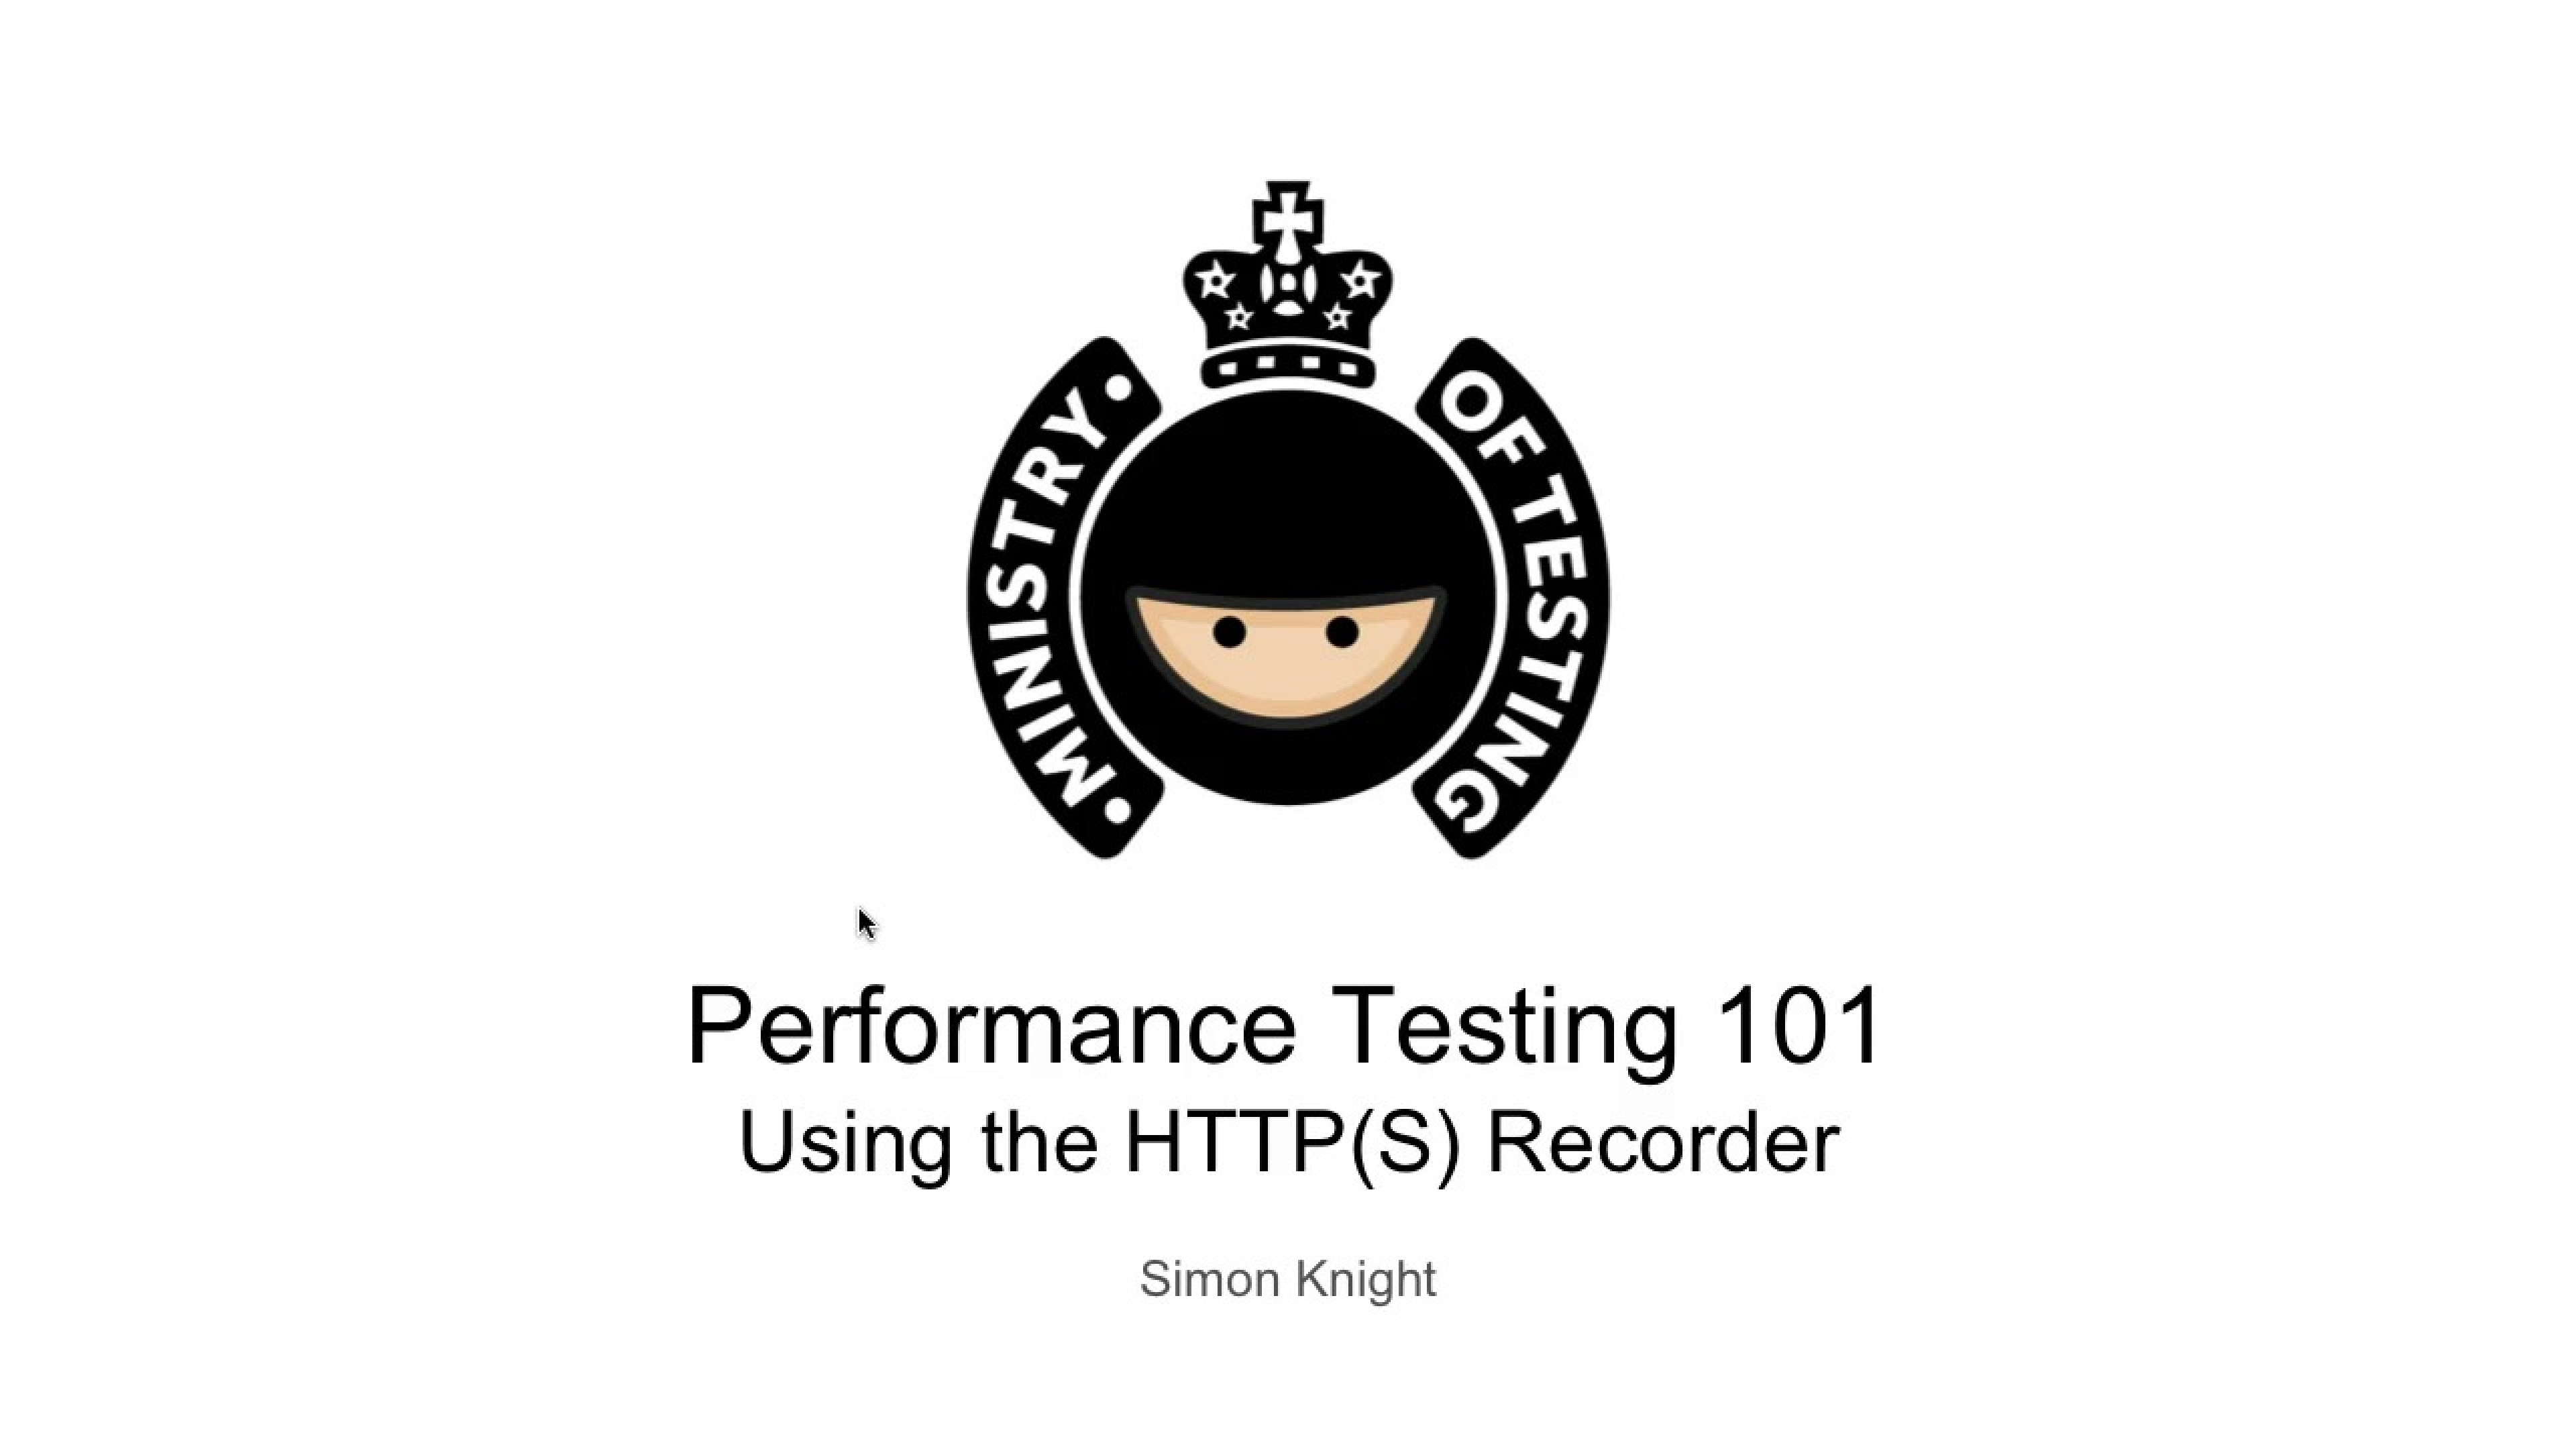 Getting Started with Scripting - Using the HTTP(S) Recorder